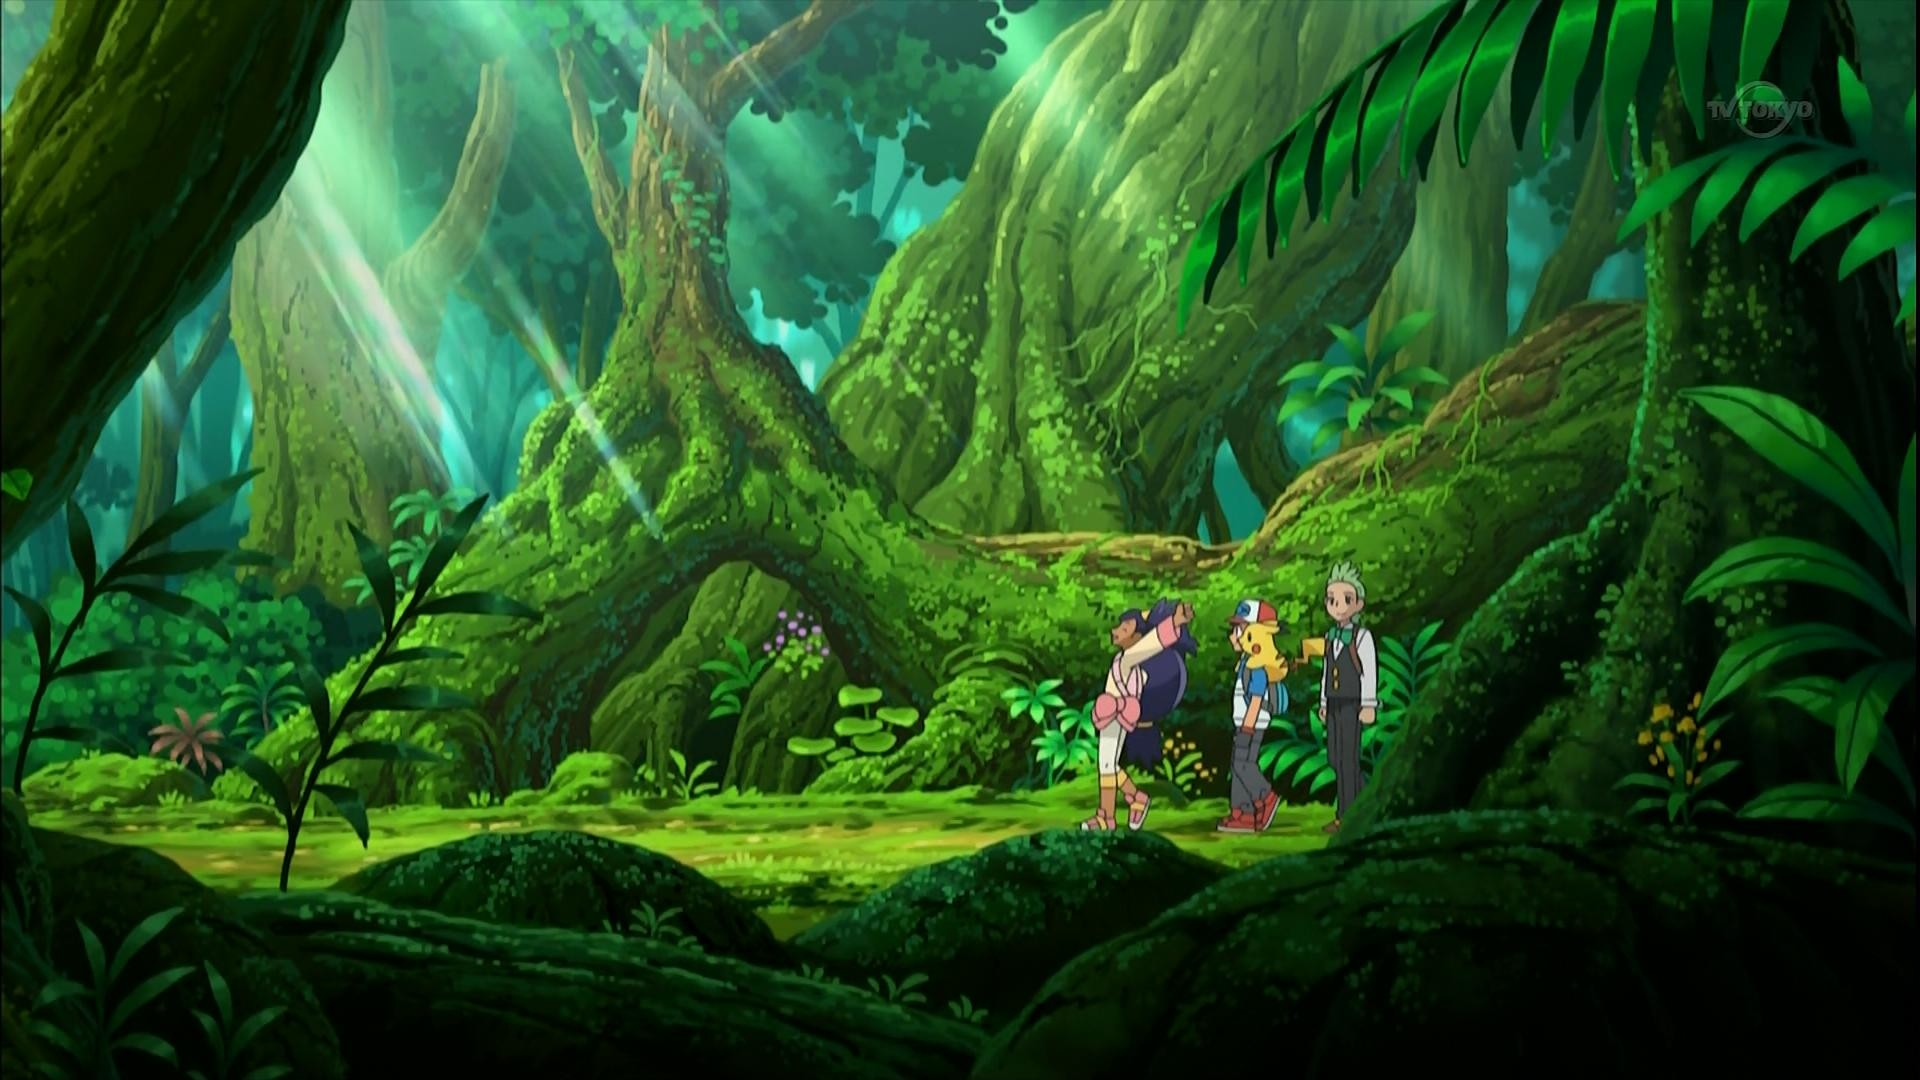 Anime forest background 69 images - Anime forest background ...